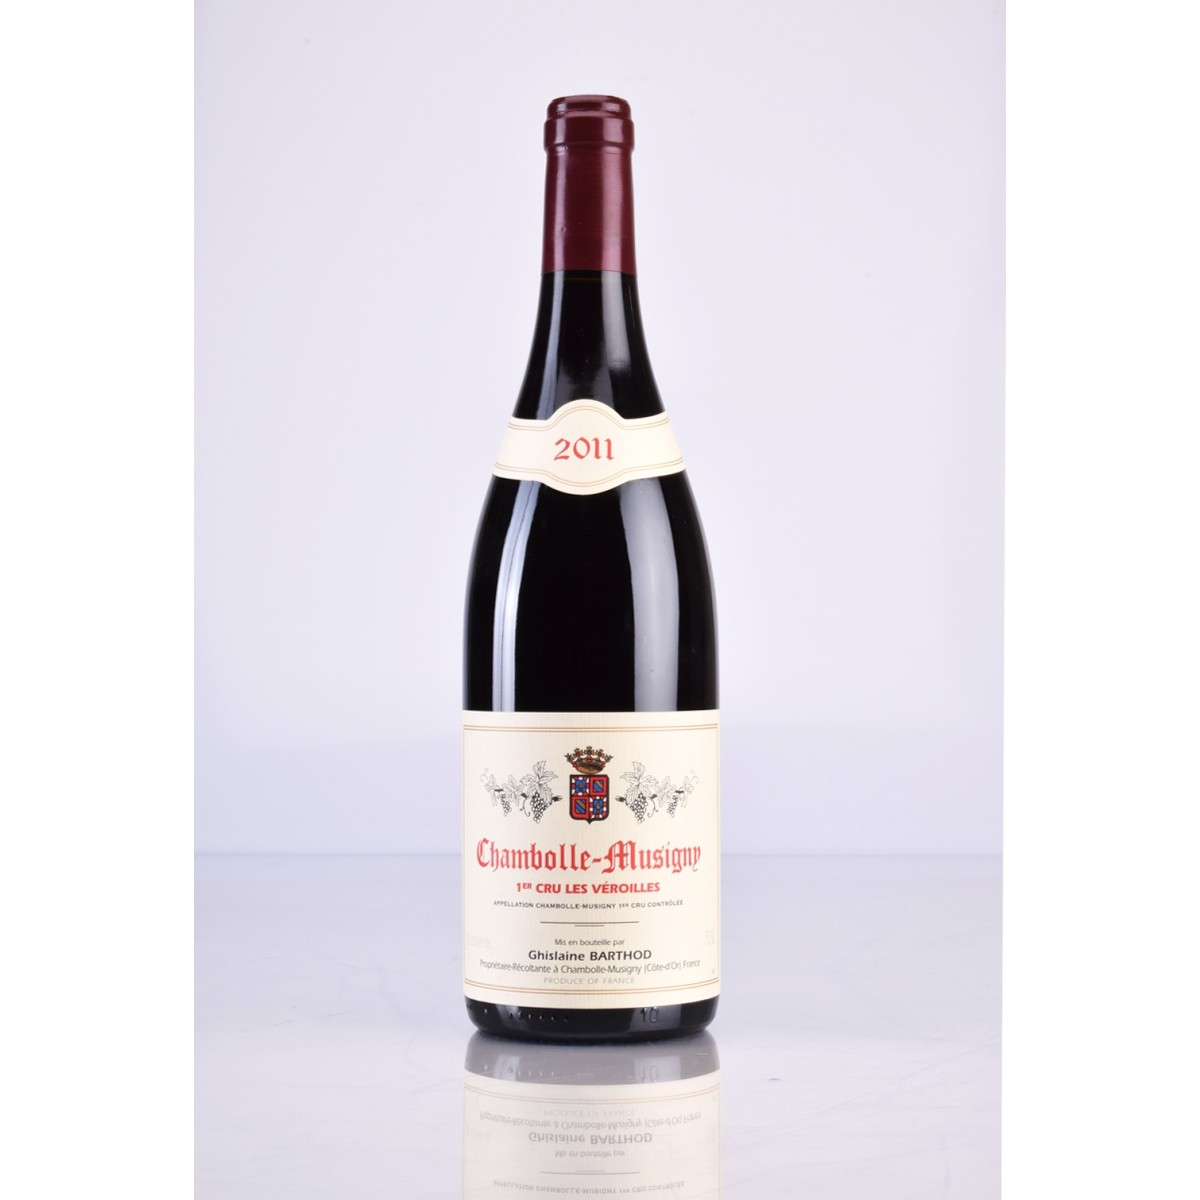 CHAMBOLLE MUSIGNY 1ER CRU LES VEROILLES AOC 2011 DOMAINE GHISLAINE BARTHOD